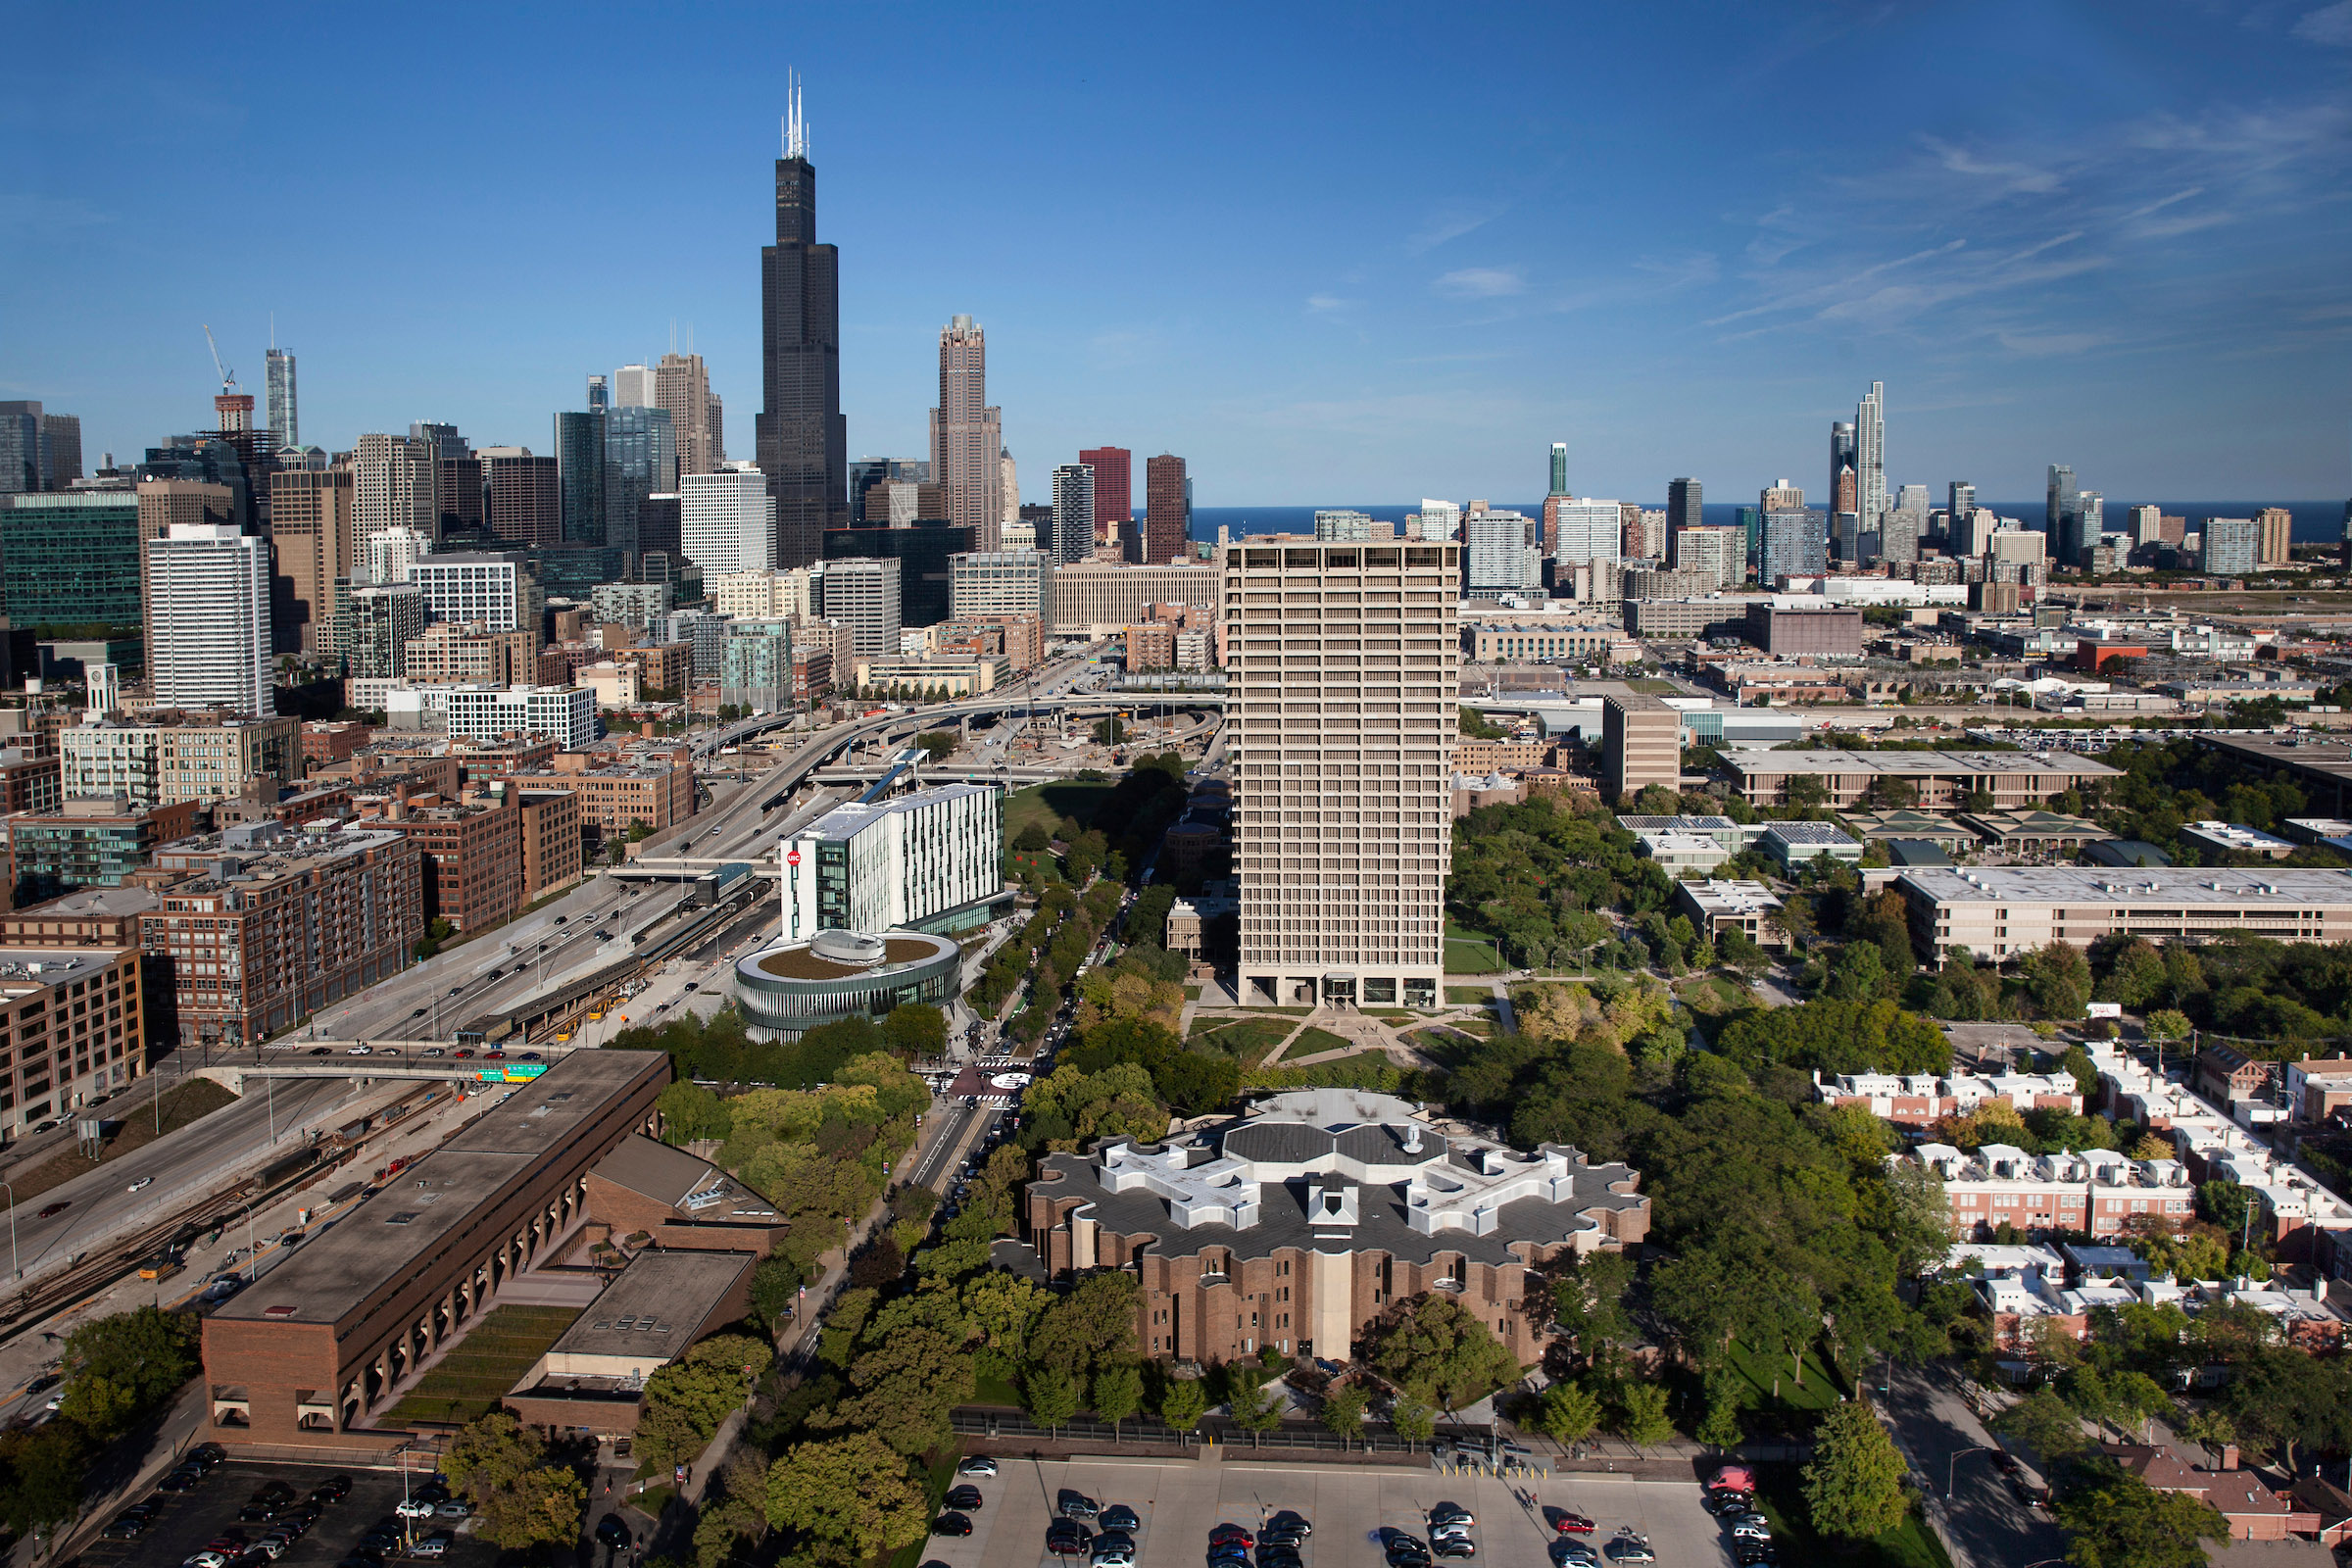 UIC campus with Chicago skyline